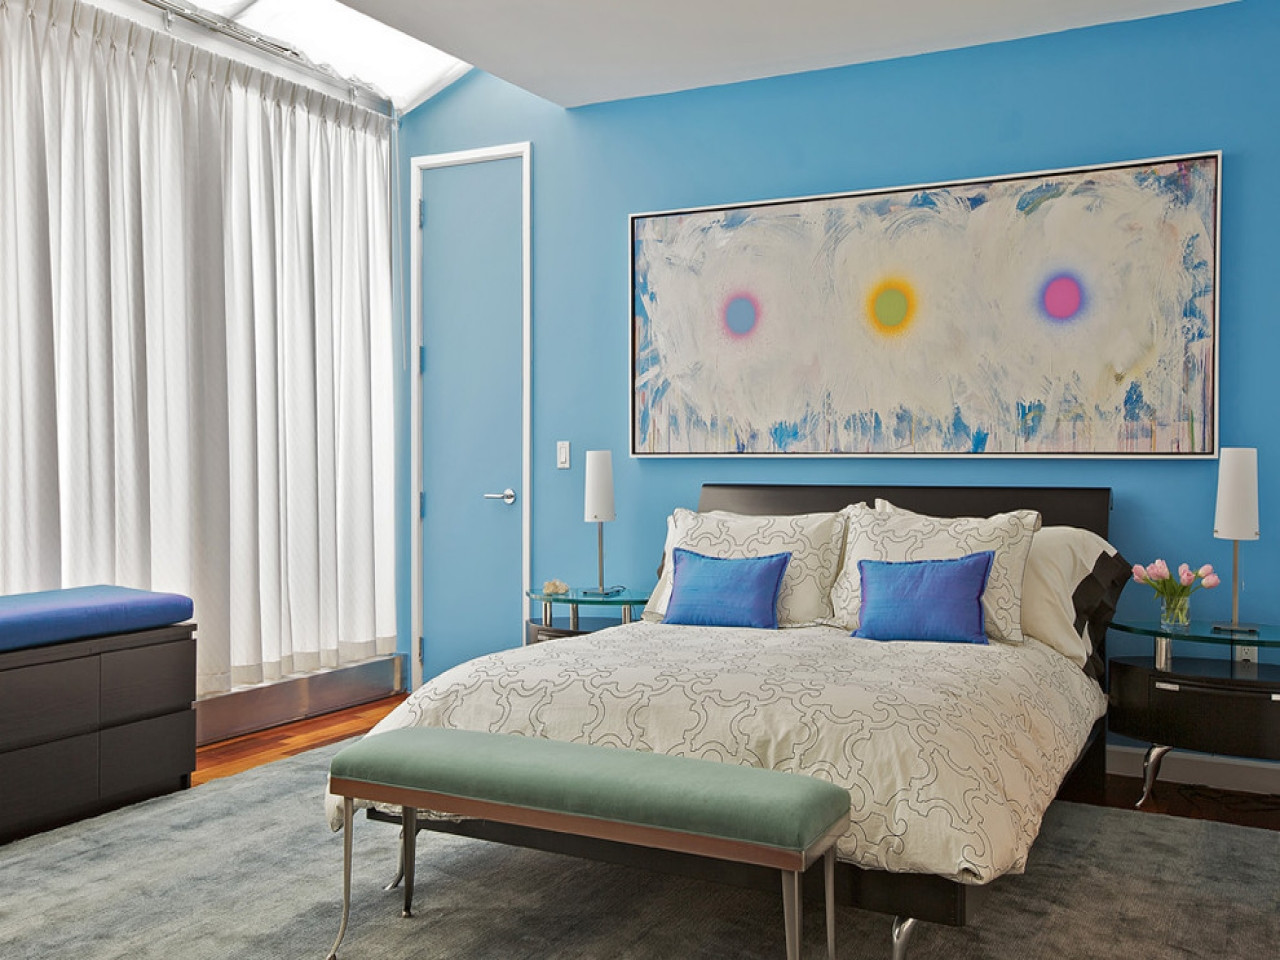 Best ideas about Paint Colors For Bedroom . Save or Pin Show bedrooms designs blue bedroom accent wall paint Now.